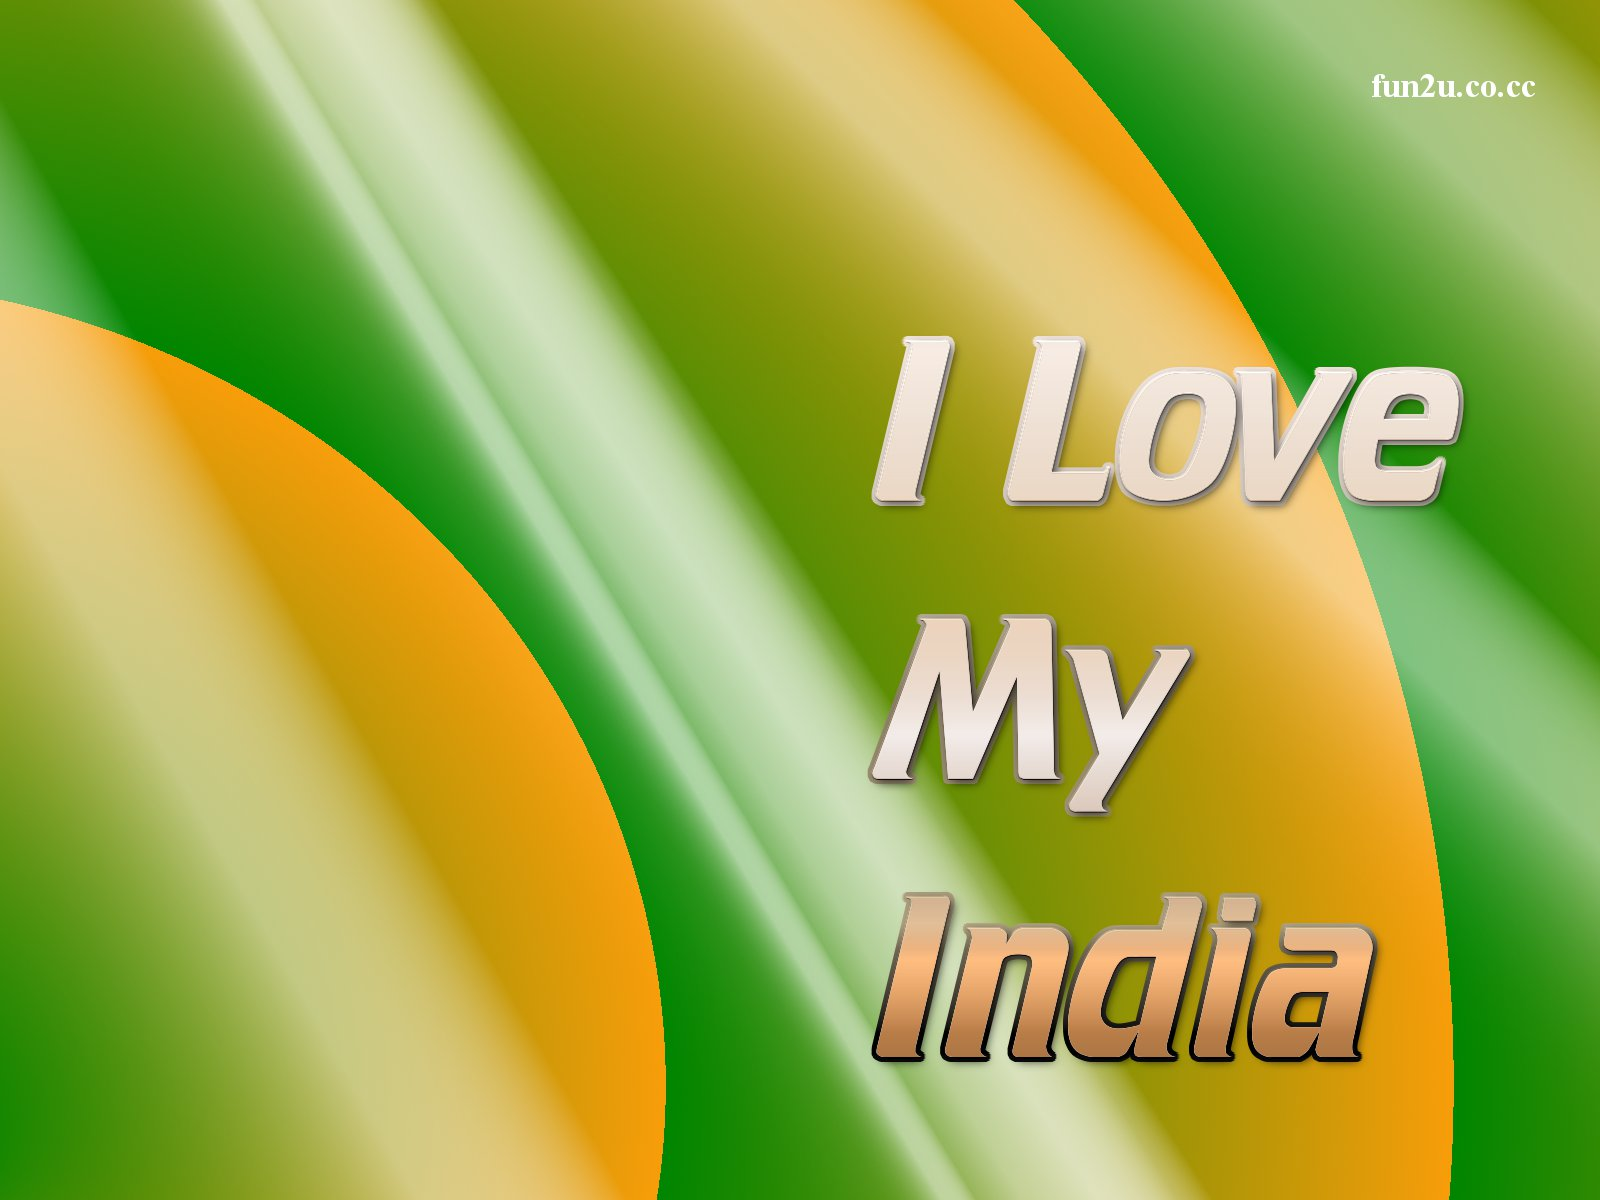 SmsQs Desktop Wallpaper I Love My India 1600x1200